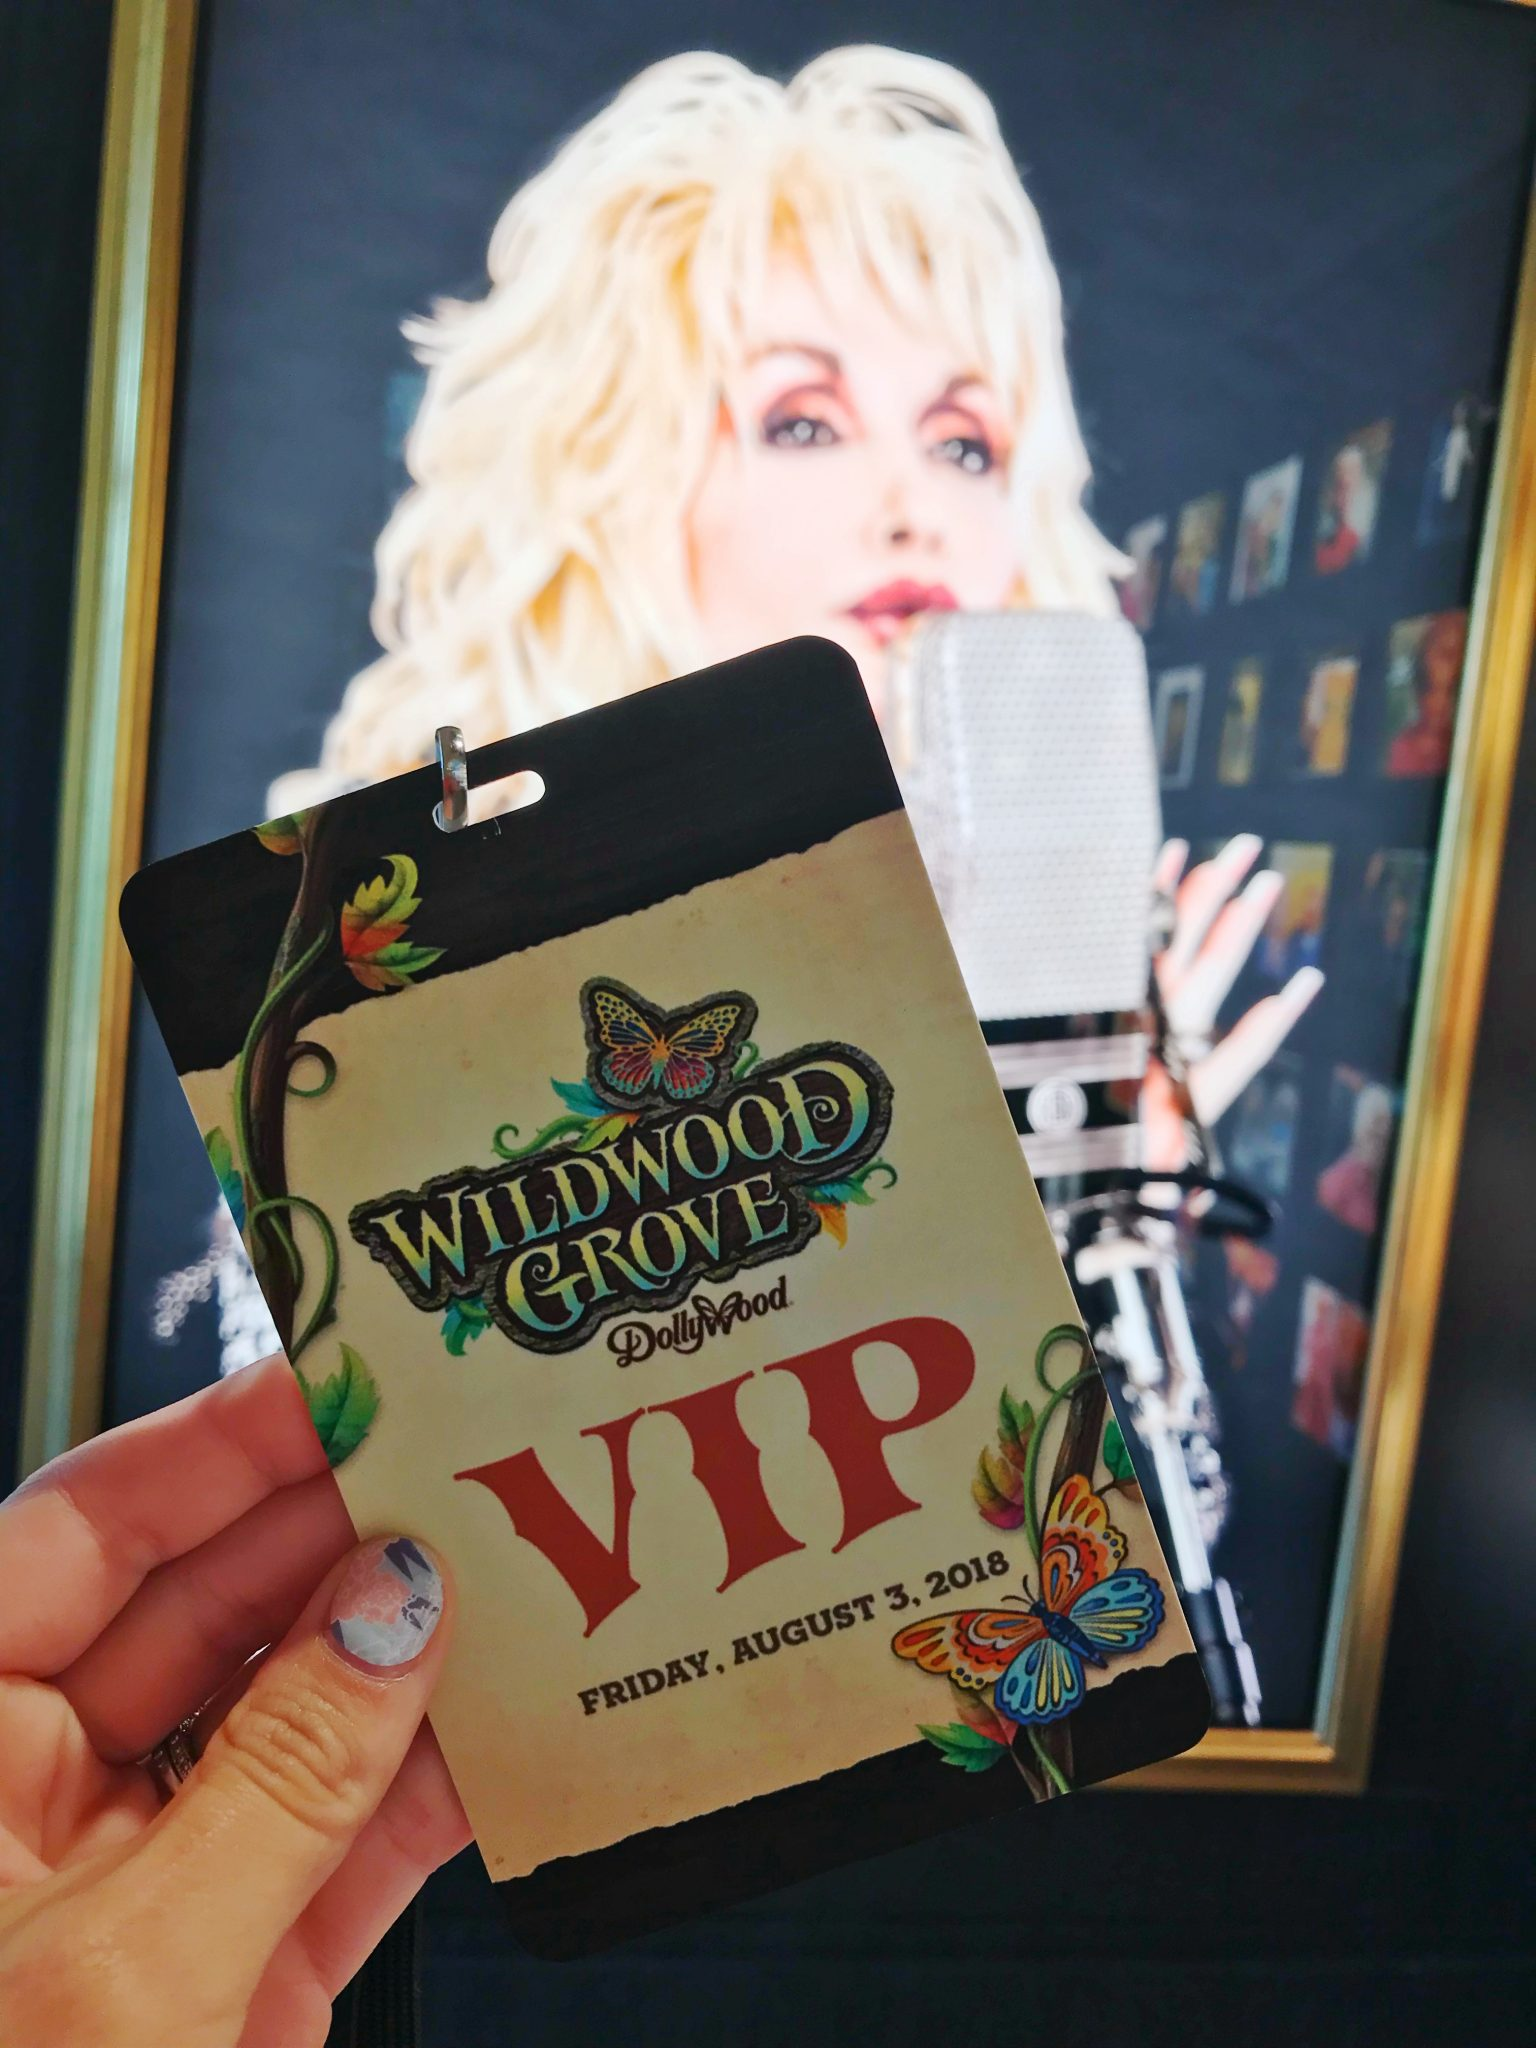 Dollywood Wildwood Grove Area Coming in 2019   Sarah in the